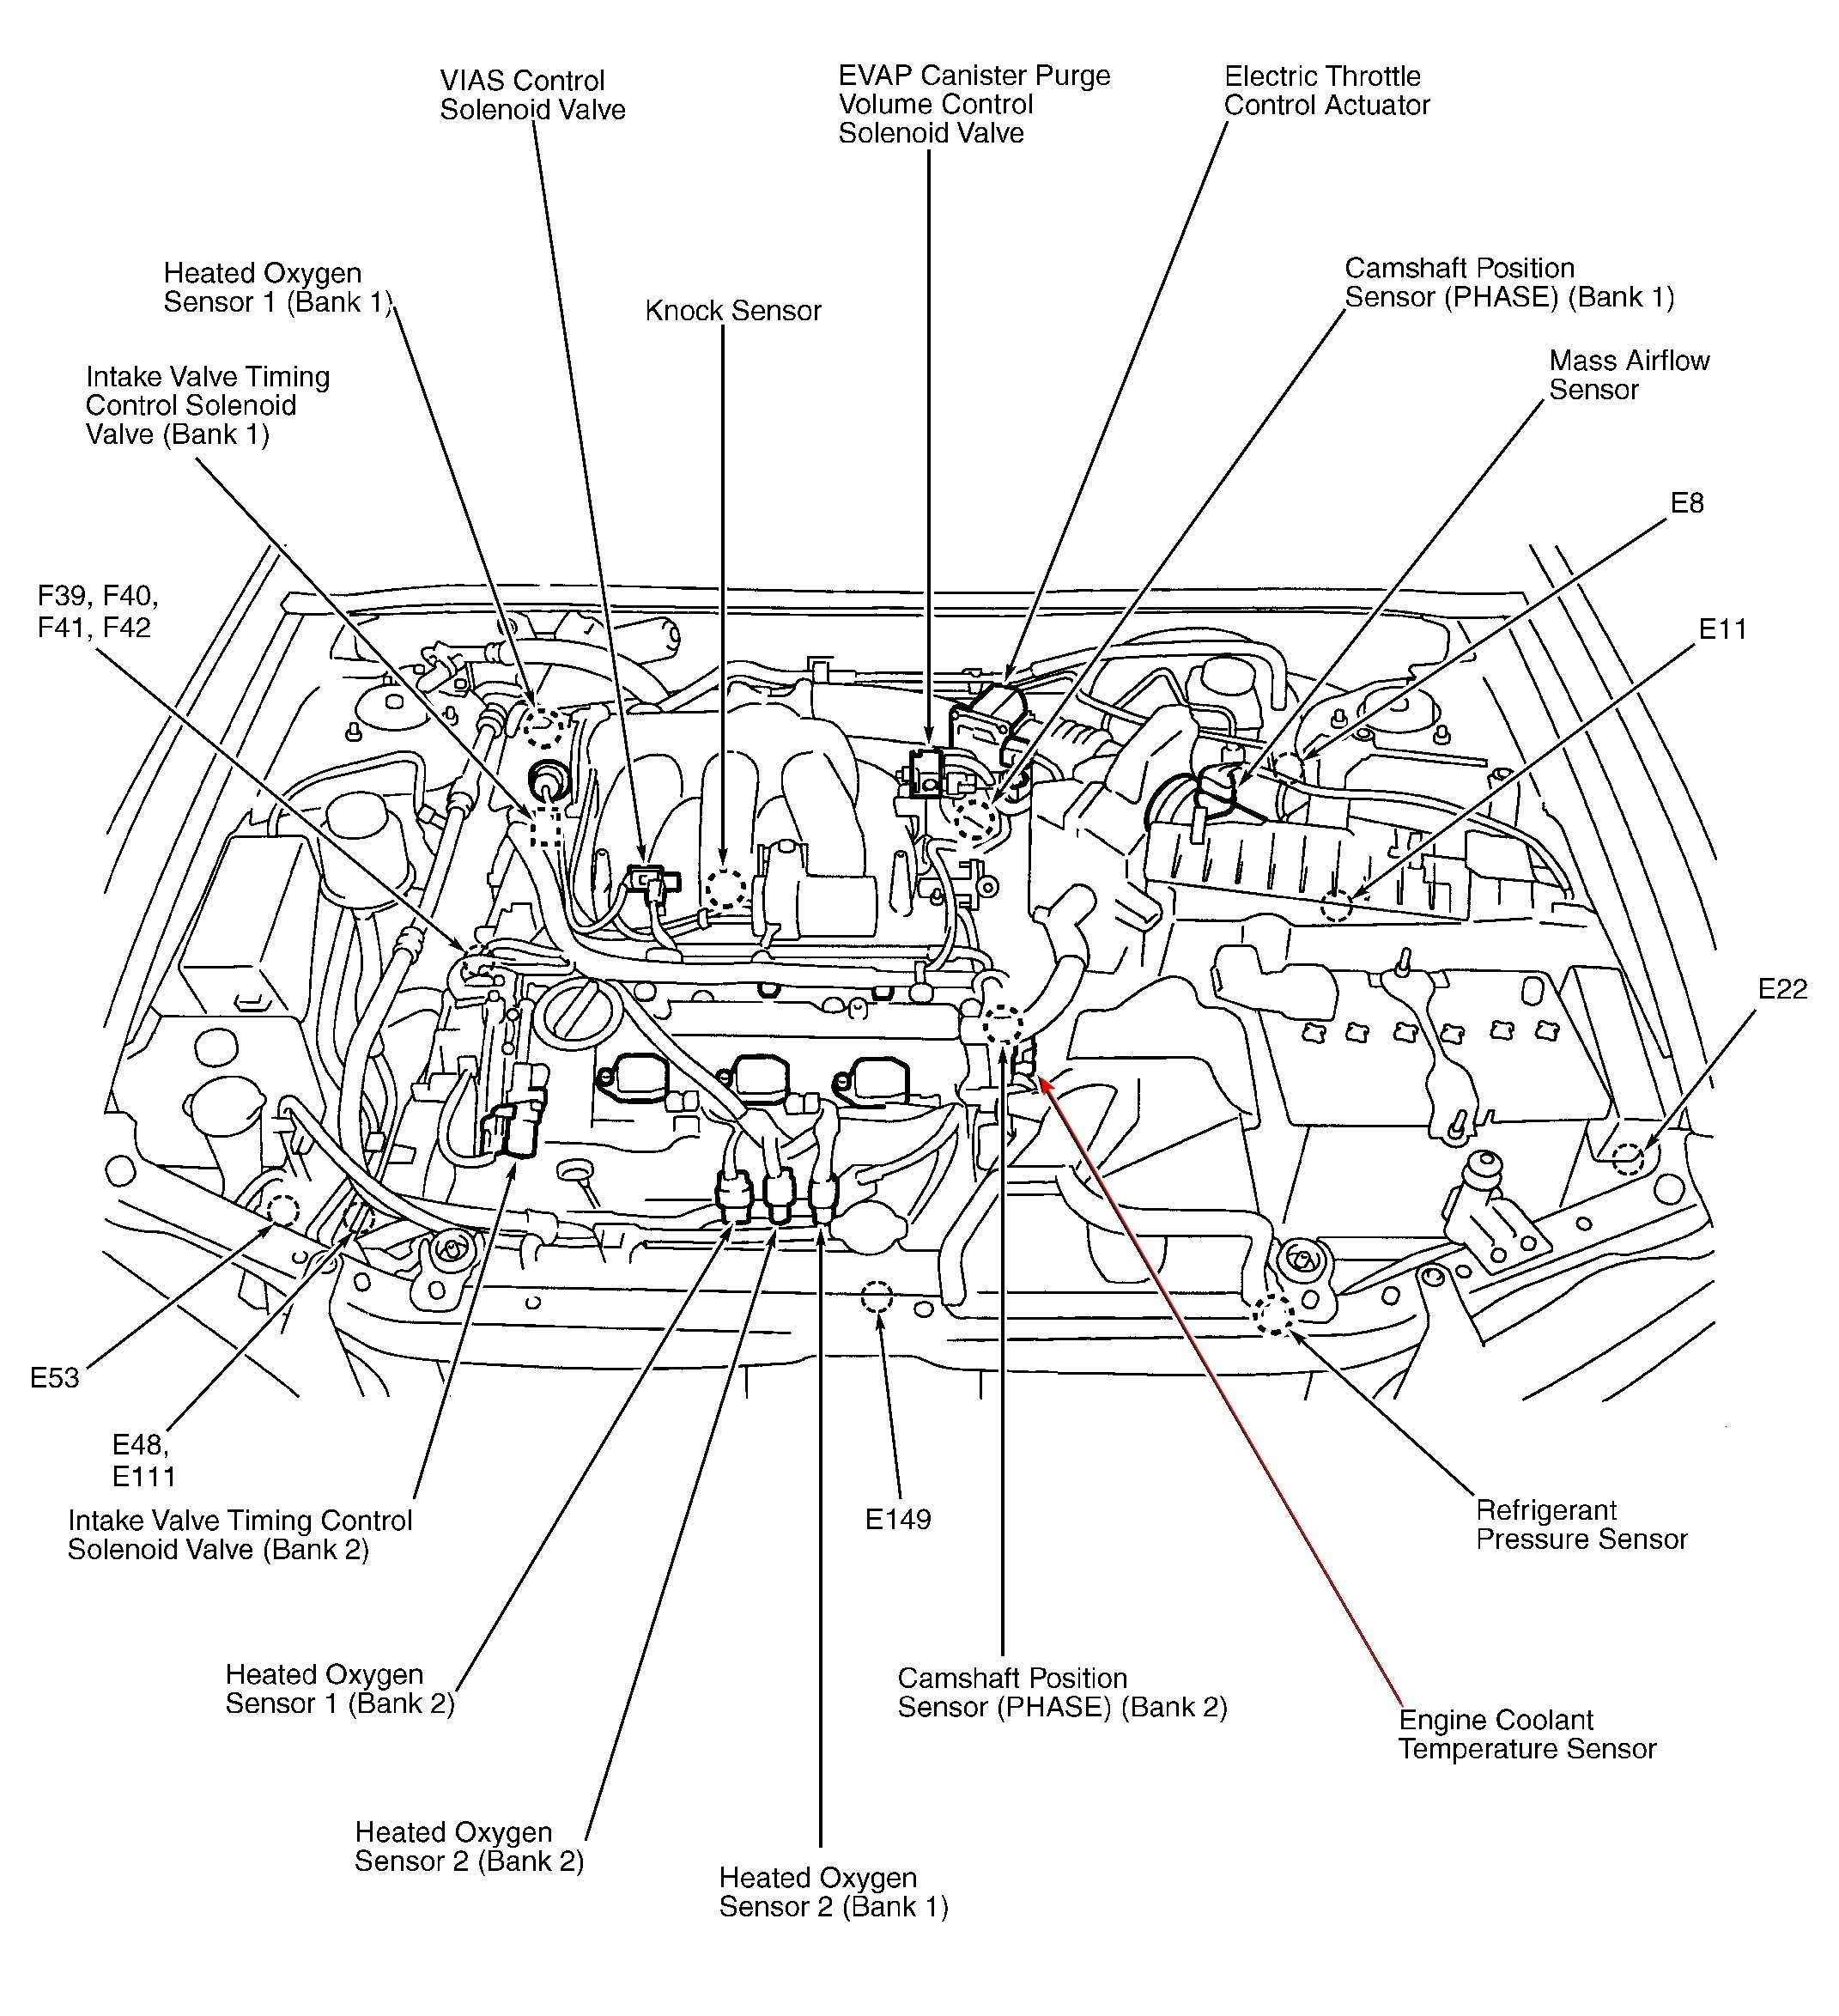 2009 Kia Rio Engine Diagram 2013 kia rio knock sensor ... Kia Rio Engine Fuse Diagram on fiat 500 fuse diagram, pontiac vibe fuse diagram, toyota matrix fuse diagram, buick century fuse diagram, mazda tribute fuse diagram, nissan maxima fuse diagram, dodge avenger fuse diagram, volkswagen beetle fuse diagram, chevy hhr fuse diagram, nissan murano fuse diagram, geo metro fuse diagram, suzuki xl7 fuse diagram, mazda b2500 fuse diagram, audi s5 fuse diagram, gmc yukon fuse diagram, honda crx fuse diagram, suzuki sx4 fuse diagram, saturn astra fuse diagram, nissan juke fuse diagram, dodge intrepid fuse diagram,